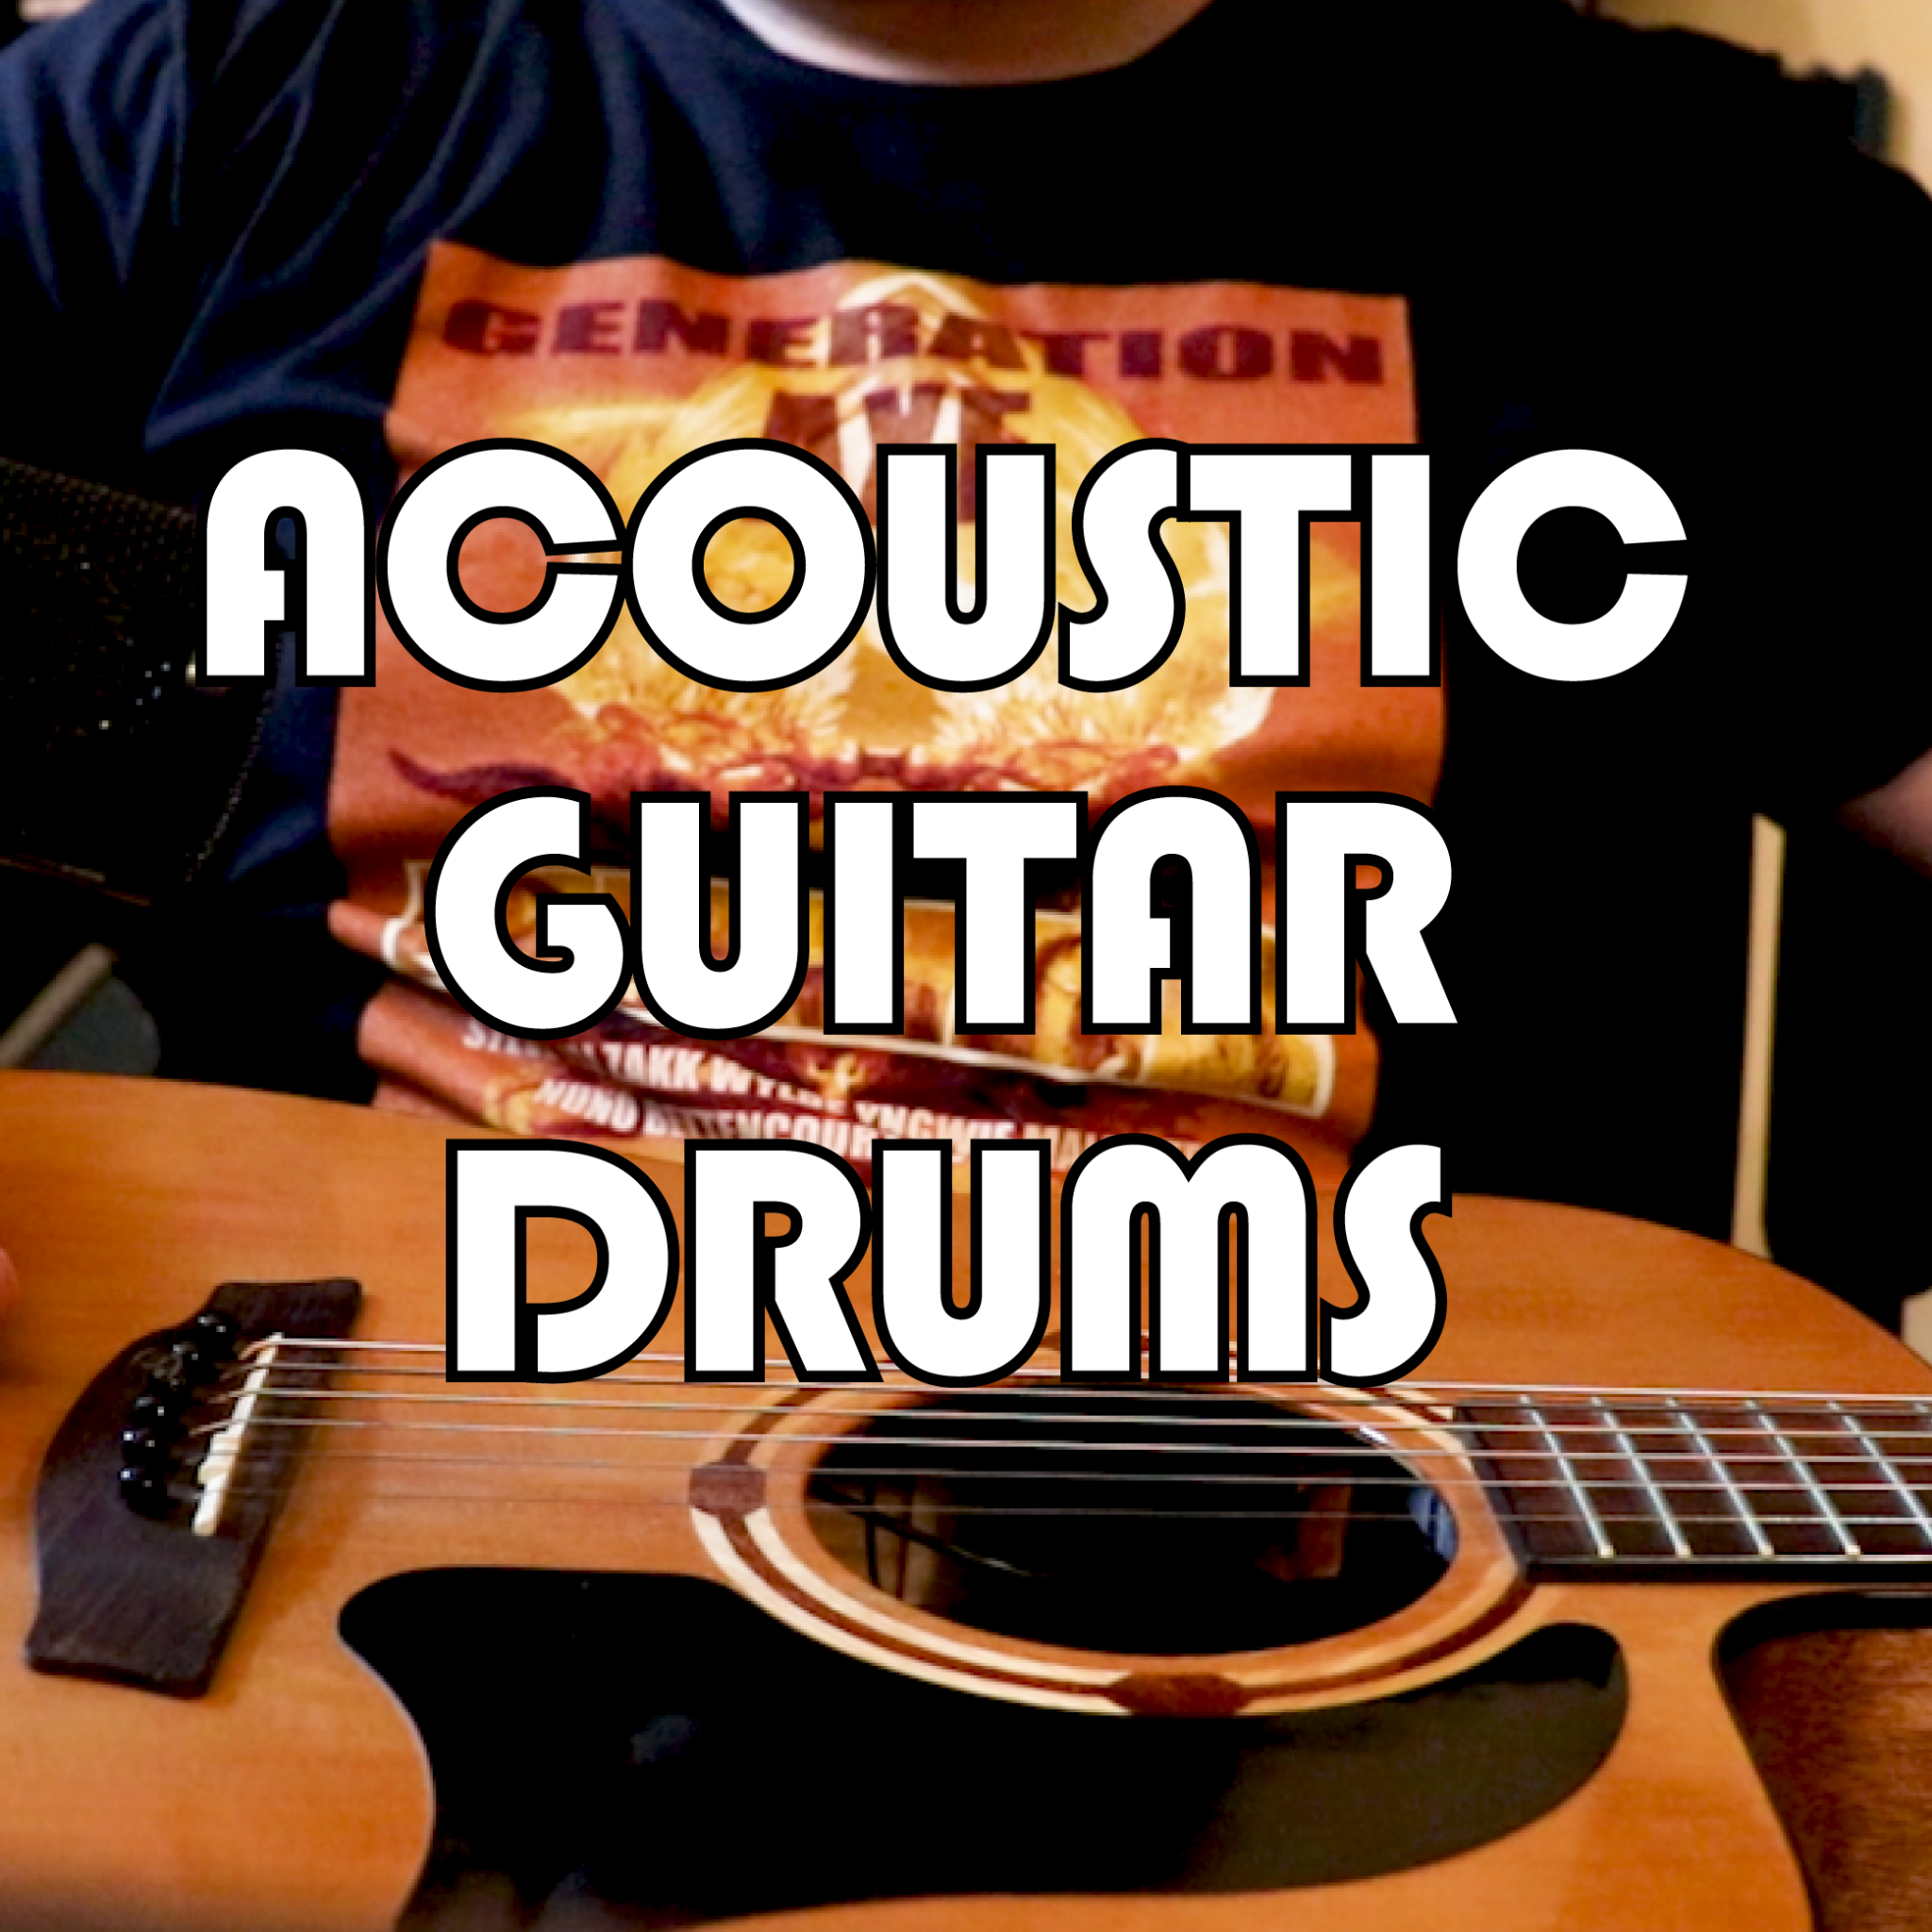 Acoustic Guitar Drums & C1 Library of Congress Sound Design